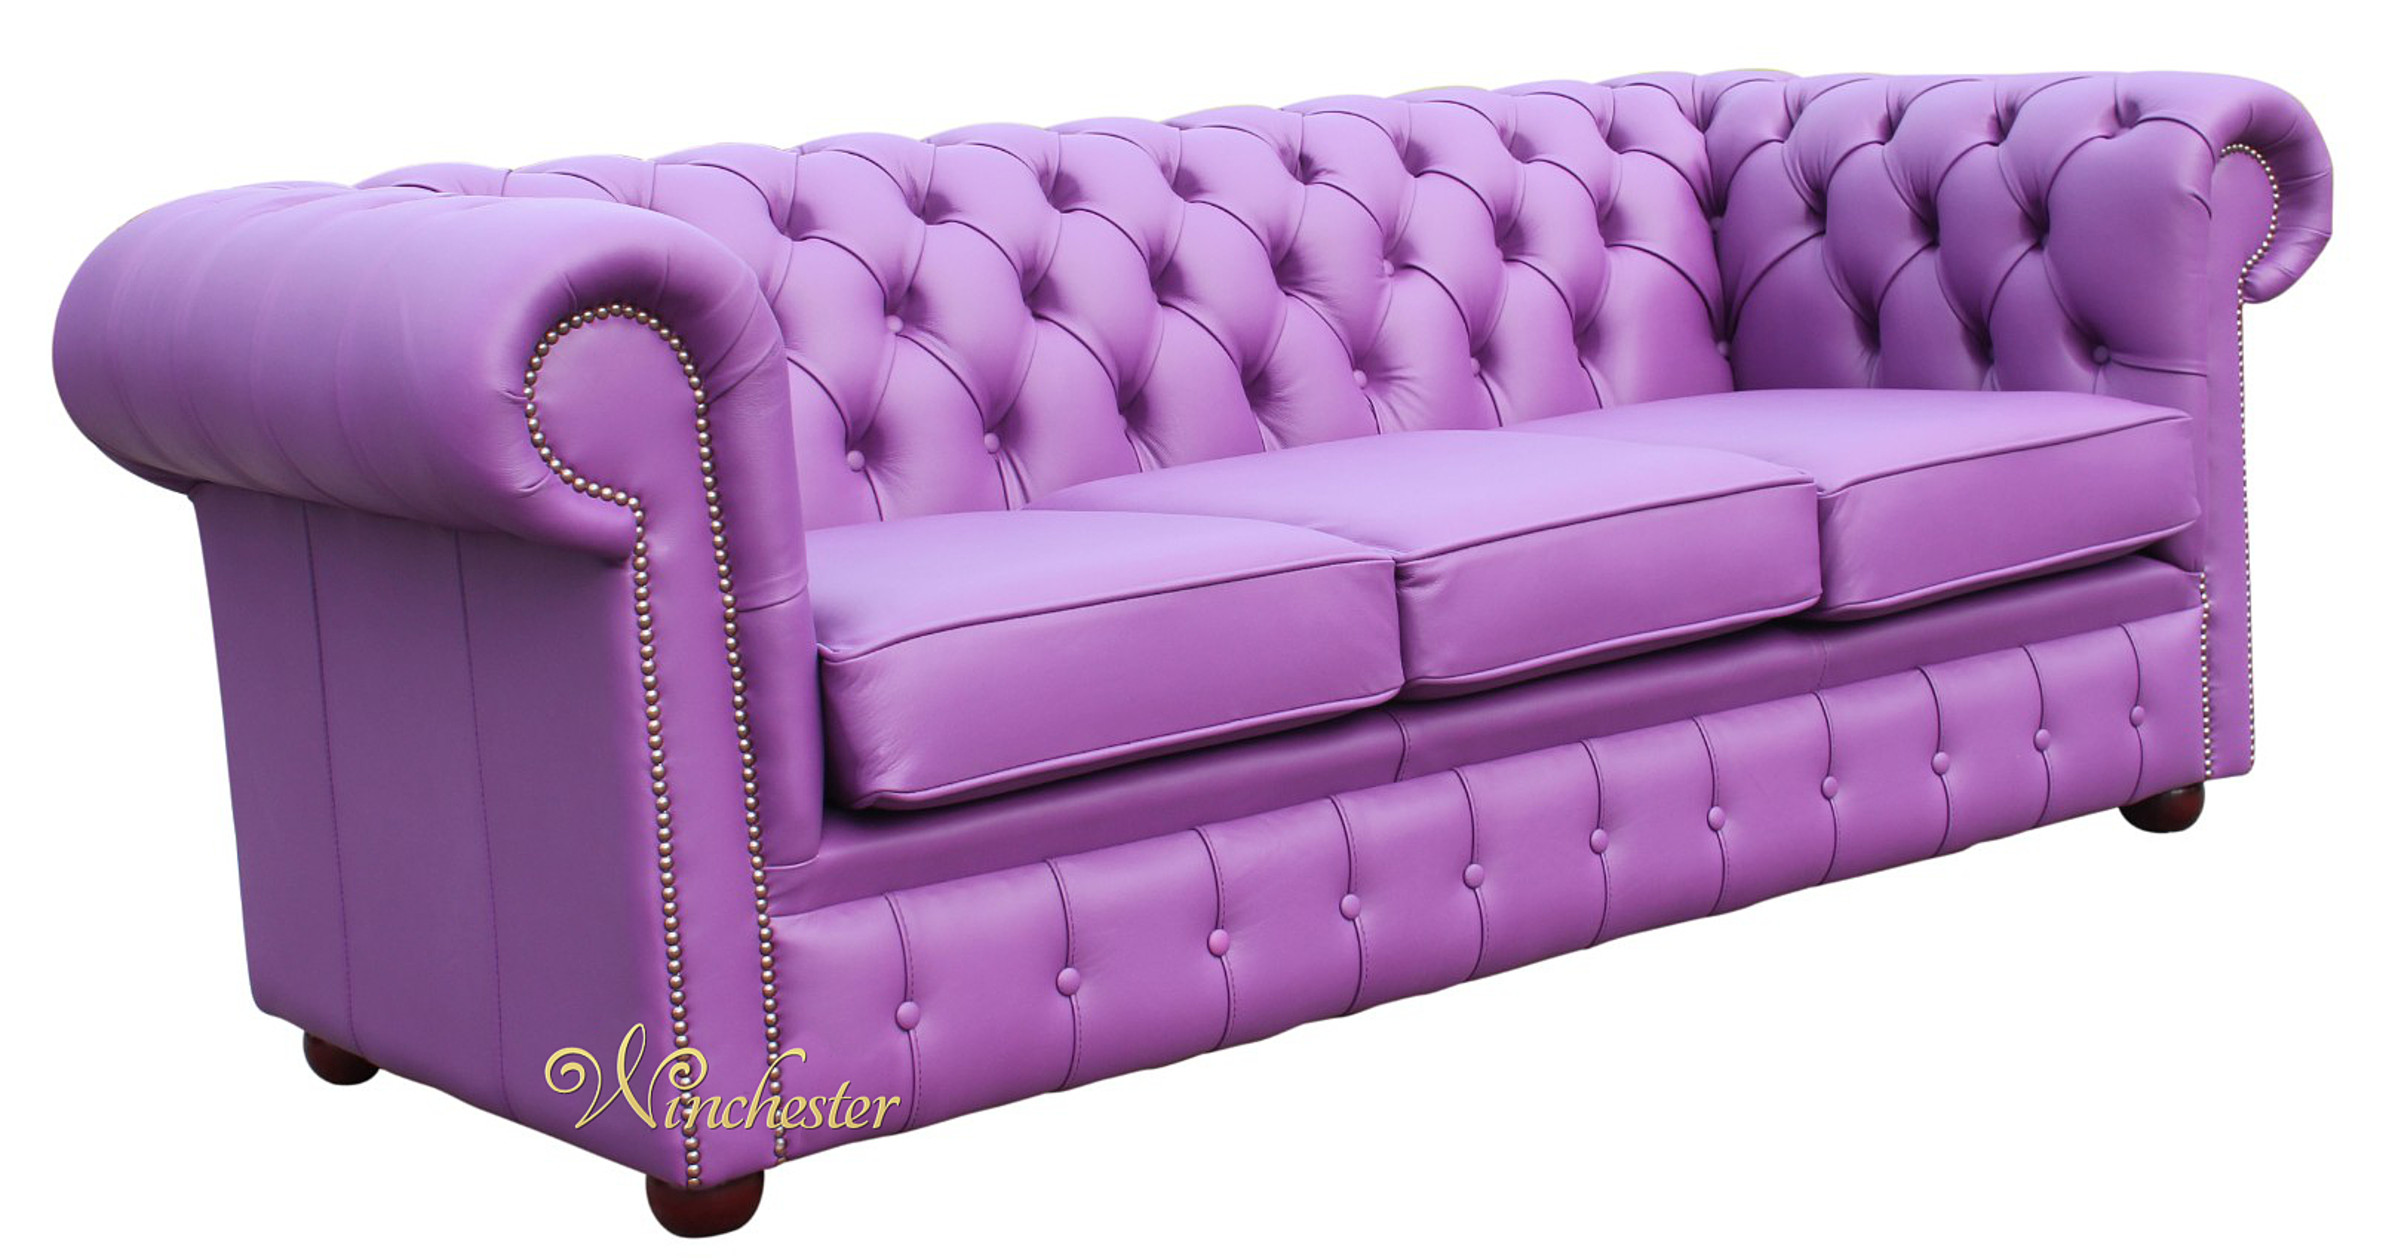 purple leather couch chesterfield 3 seater settee wineberry purple leather sofa 1690